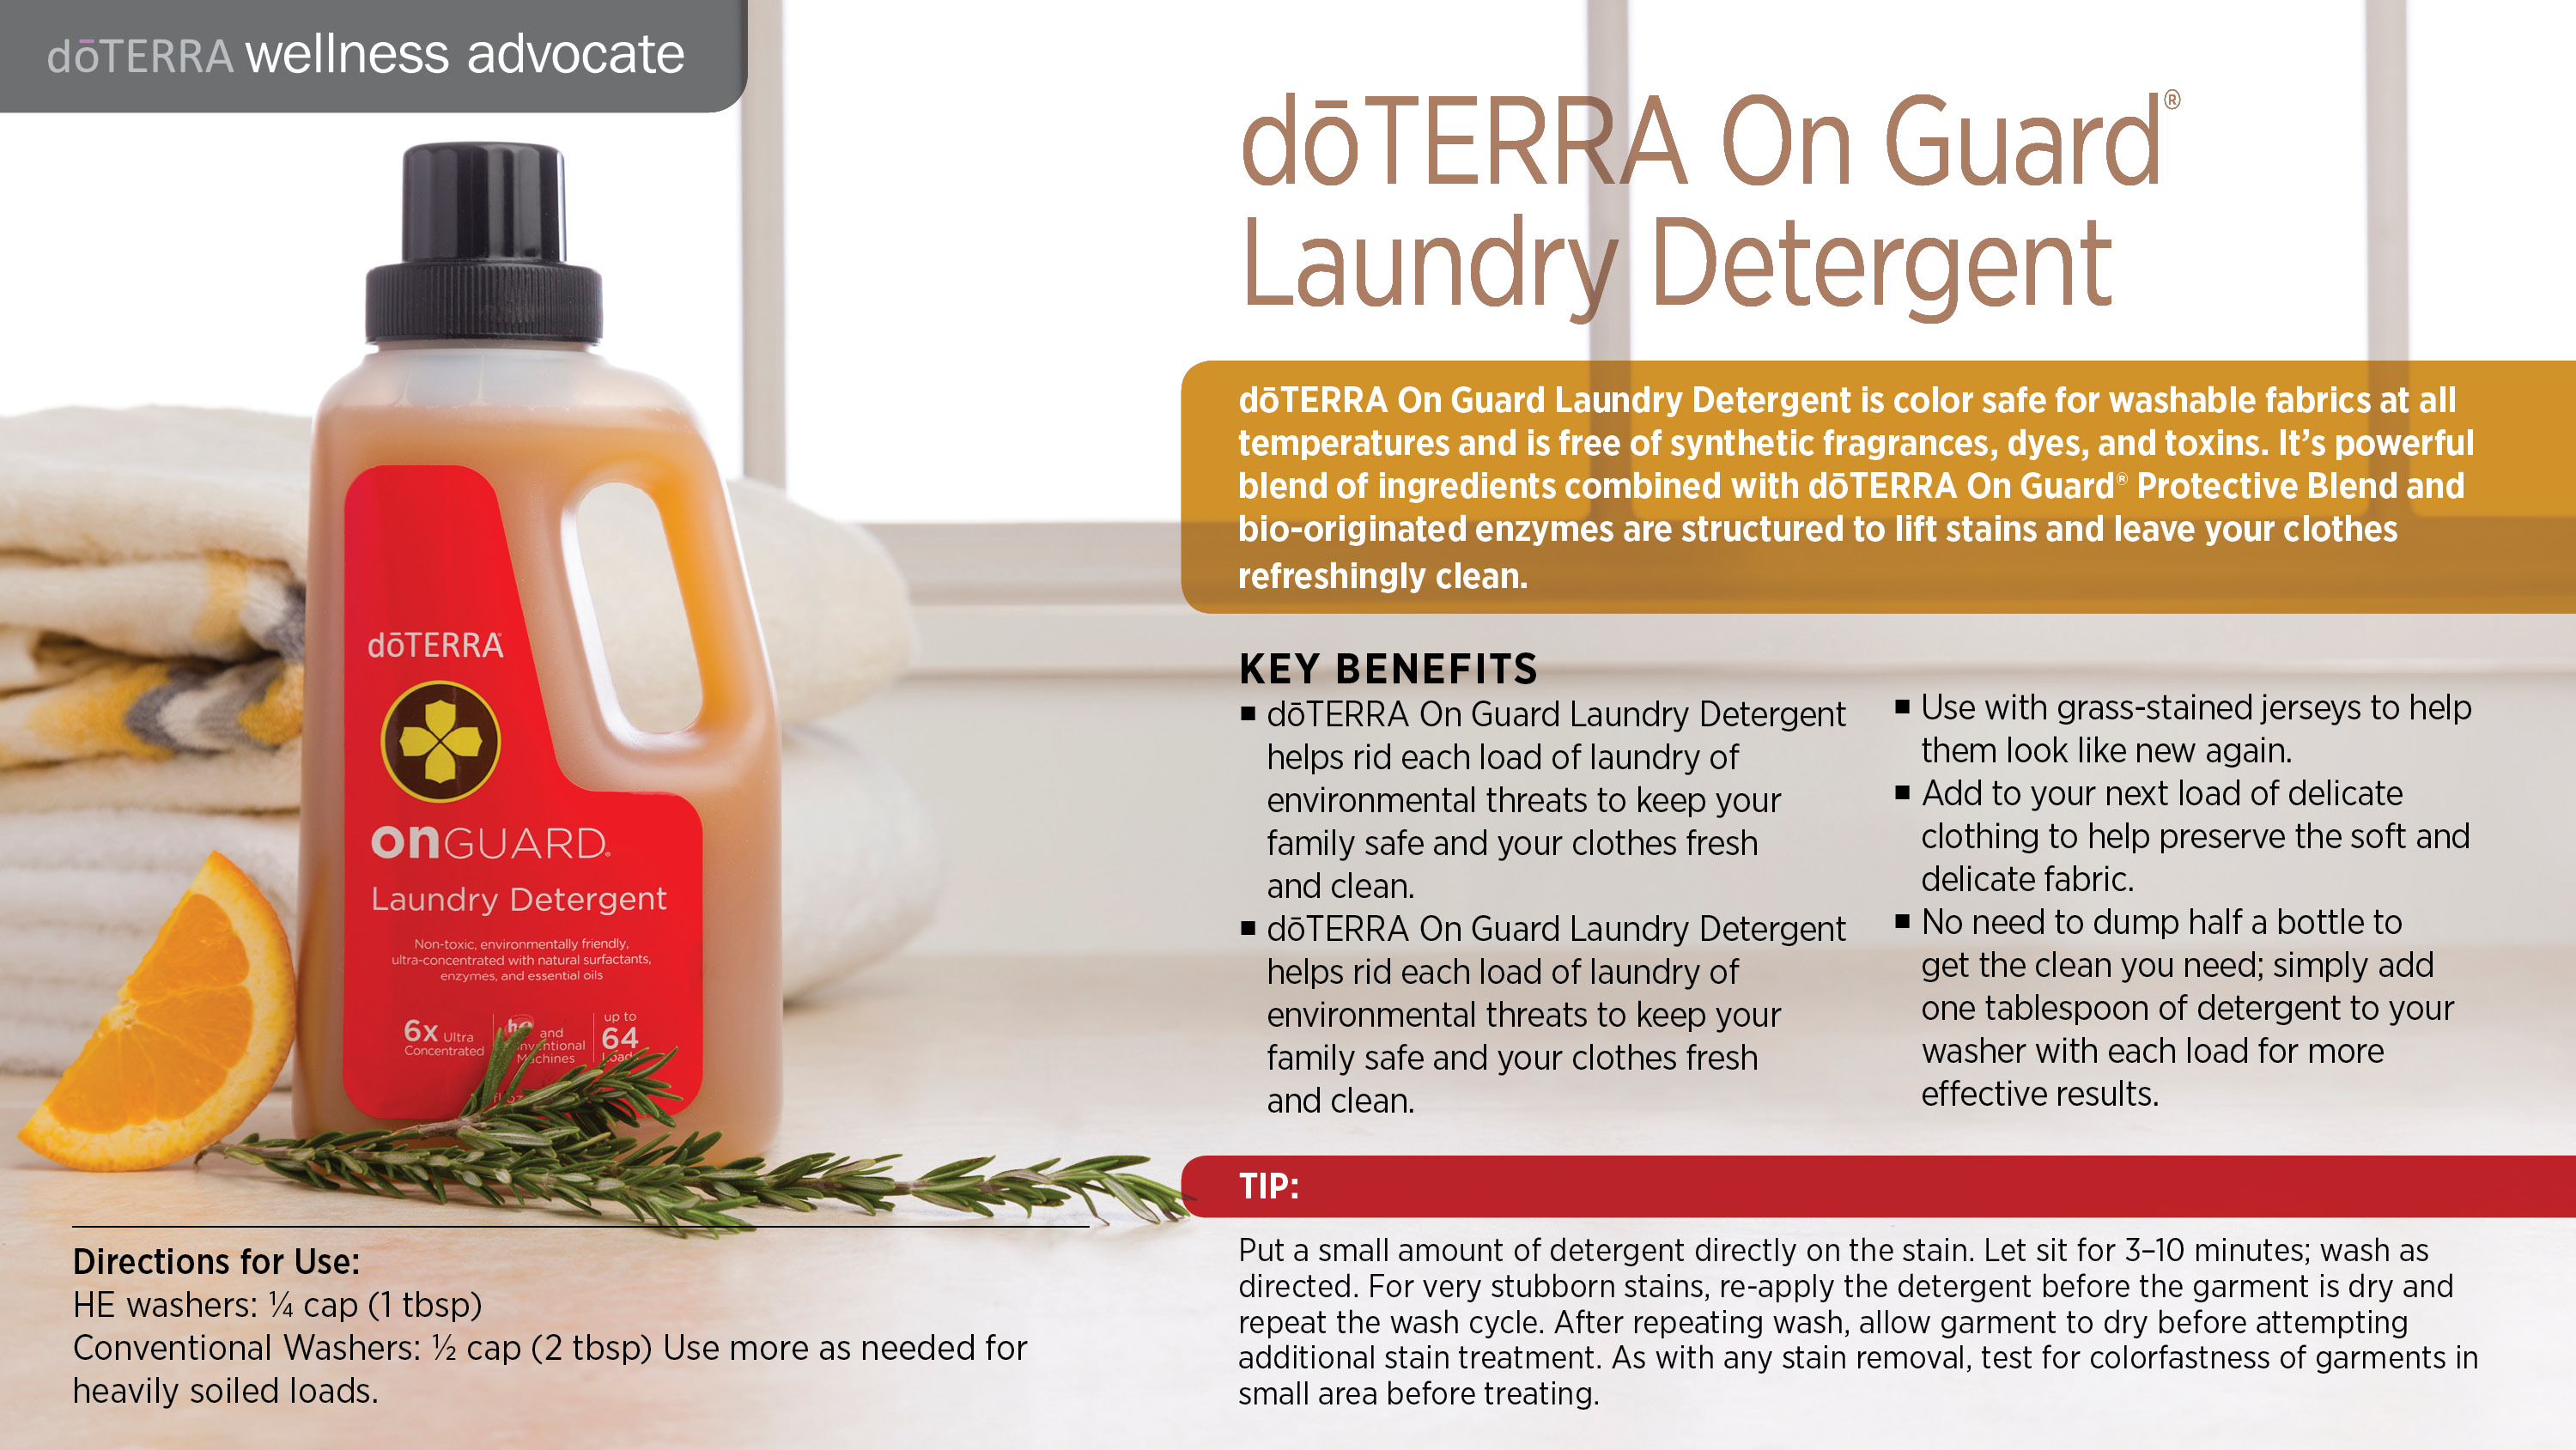 wa-on-guard-laundry-detergent